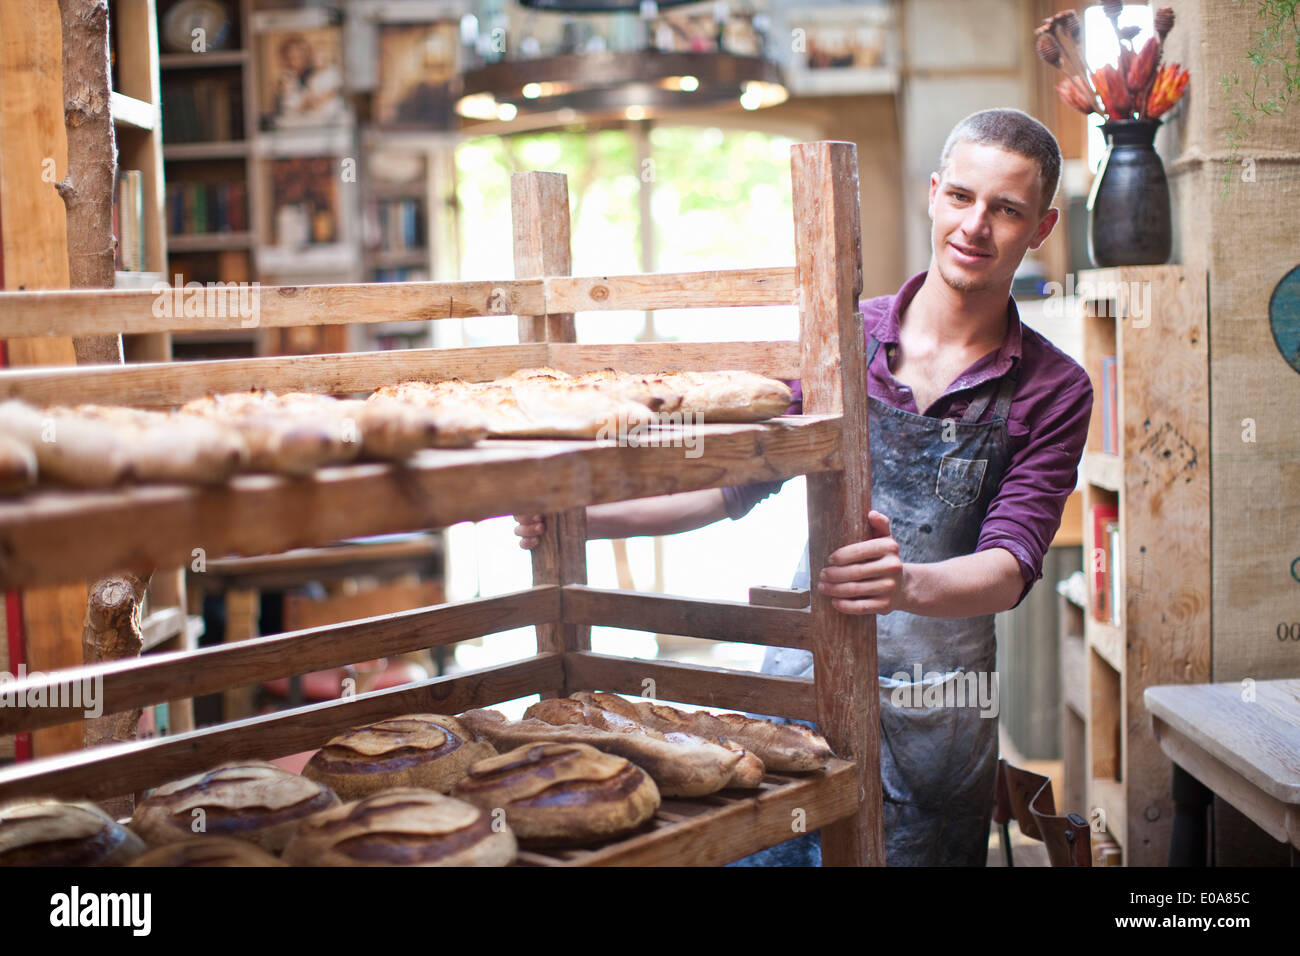 Portrait of young male baker with shelves of fresh bread - Stock Image